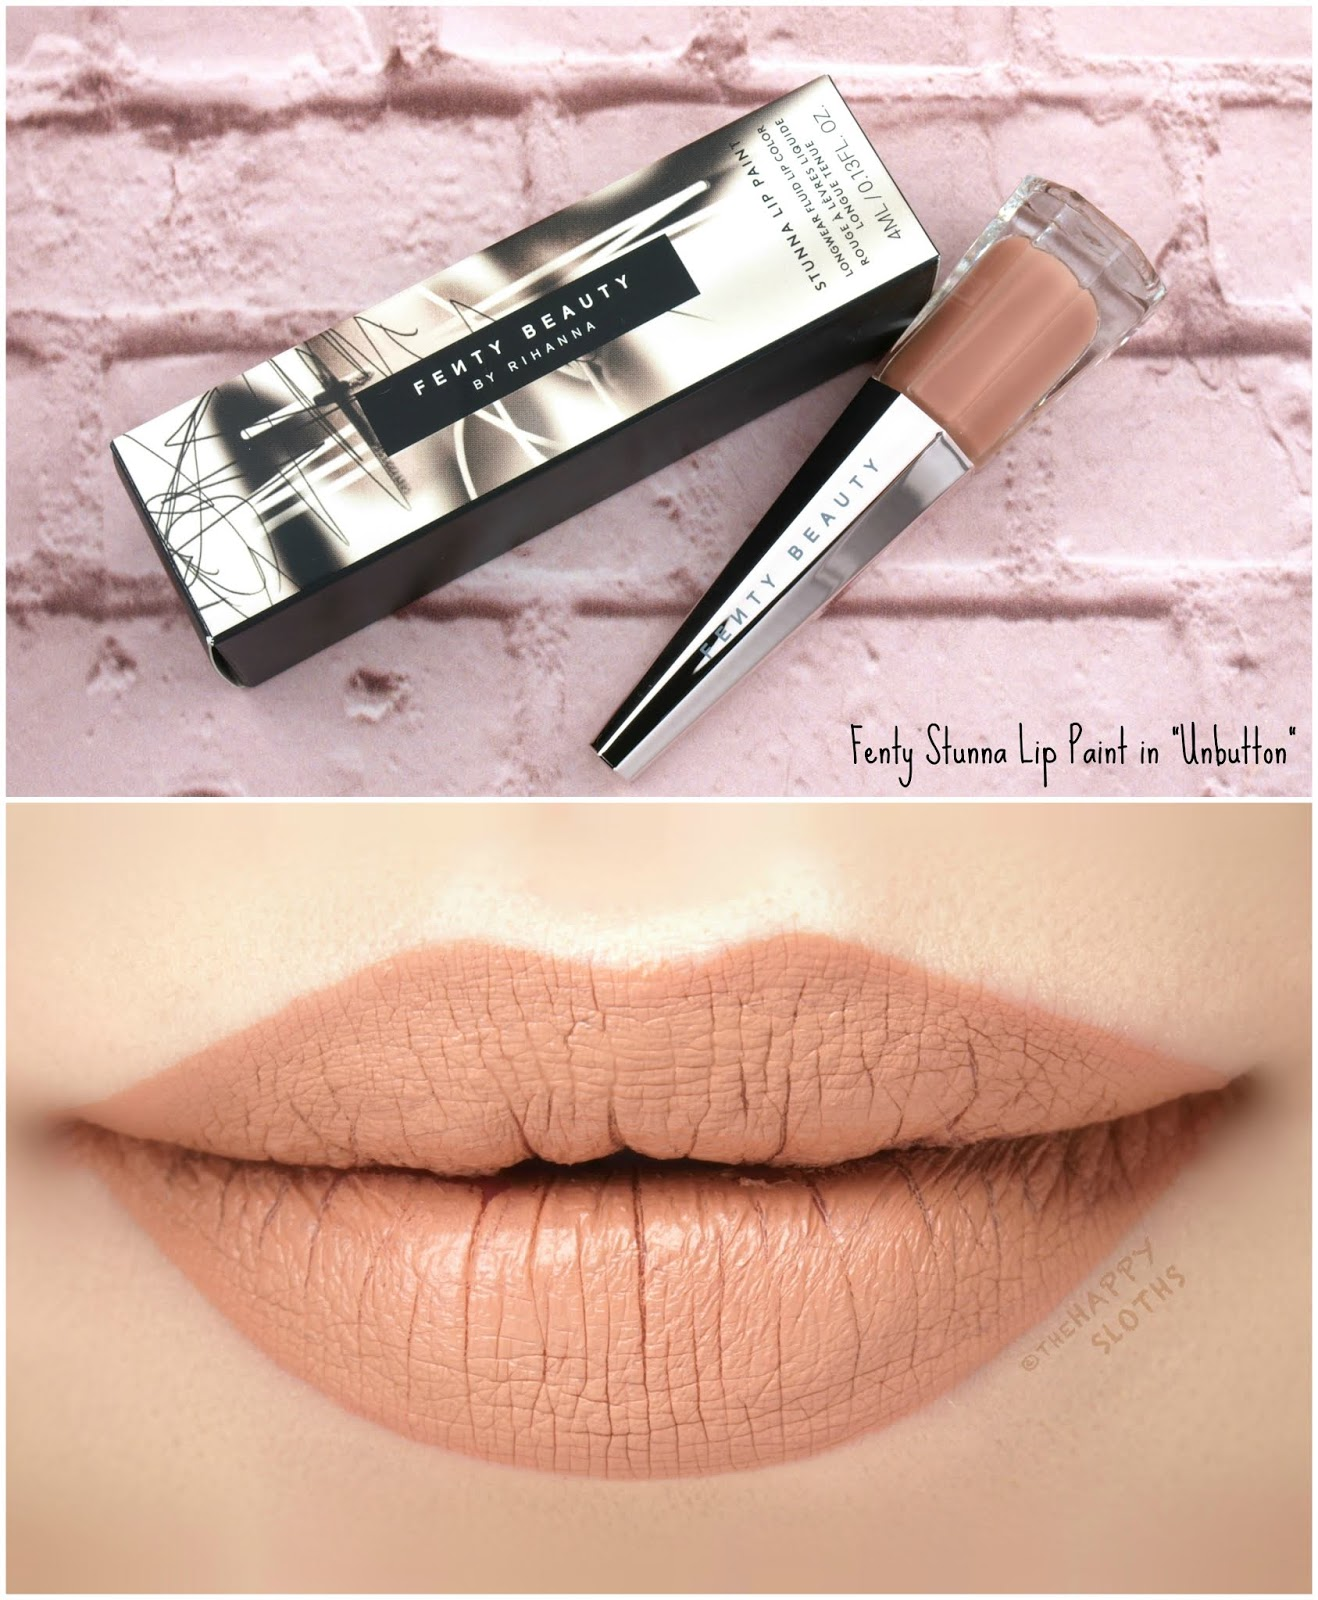 Enthusiastic O.two.o Lipstick Matte Lipsticks Long-lasting Easy To Wear Waterproof Baby Lip Balm Nude Cosmetic Gold Makeup Lips 12 Colors Traveling Beauty Essentials Lipstick